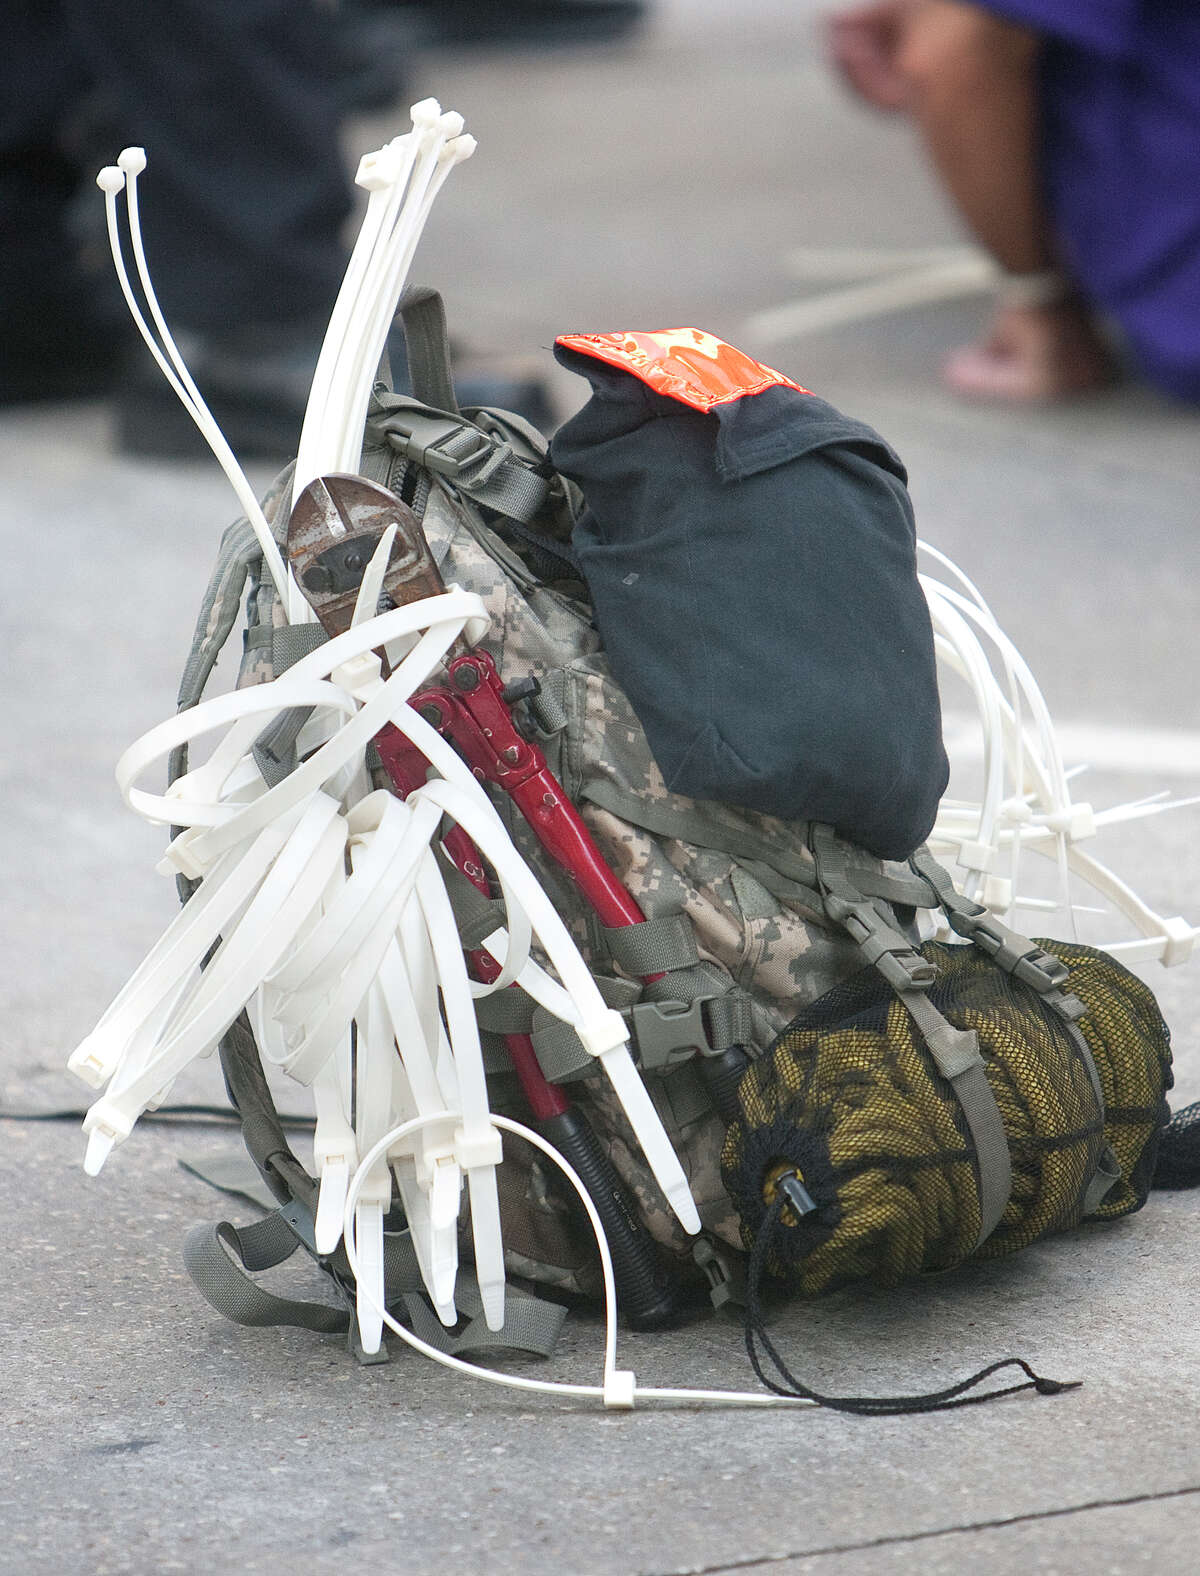 A bag with tools used to arrest protesters is seen at the intersection of Dallas and Smith Streets Wednesday, August 1, 2012, in Houston. Civil rights and labor activists are currently demonstrating civil disobedience and supporting janitors who are entering their fourth week of an unfair labor practices strike.